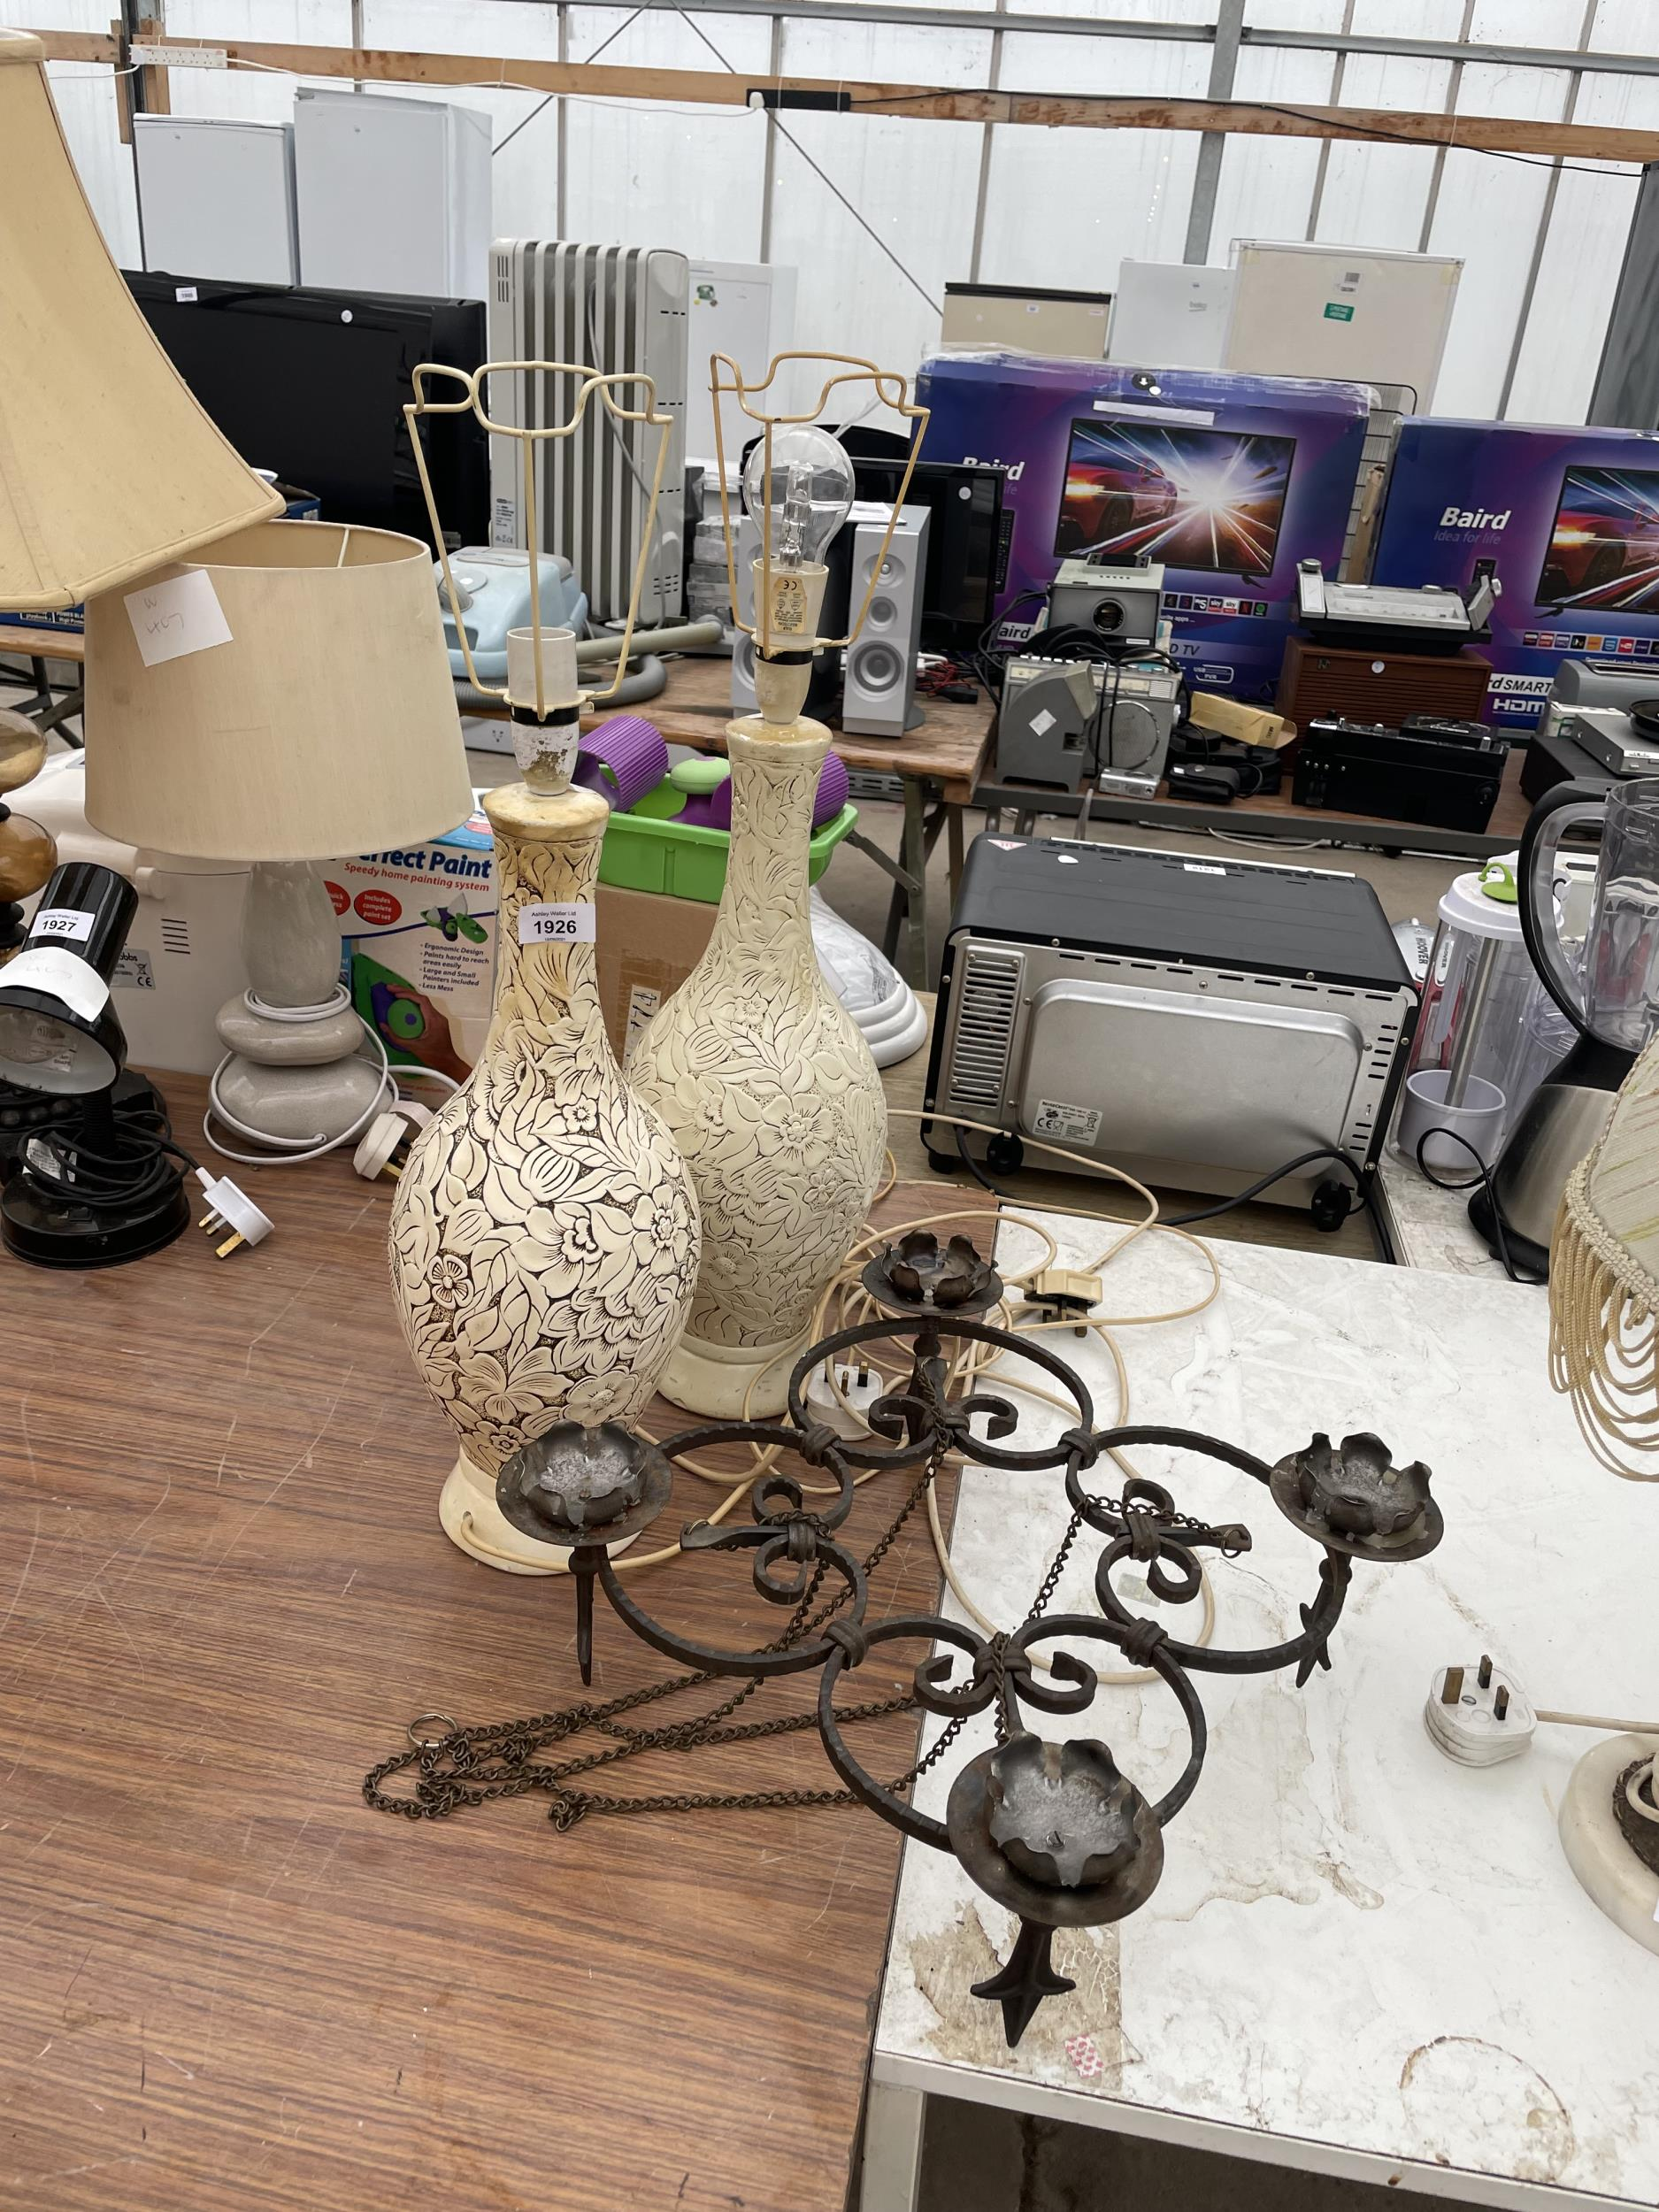 TWO DECORATIVE TABLE LAMPS AND A HANGING CANDLE HOLDER